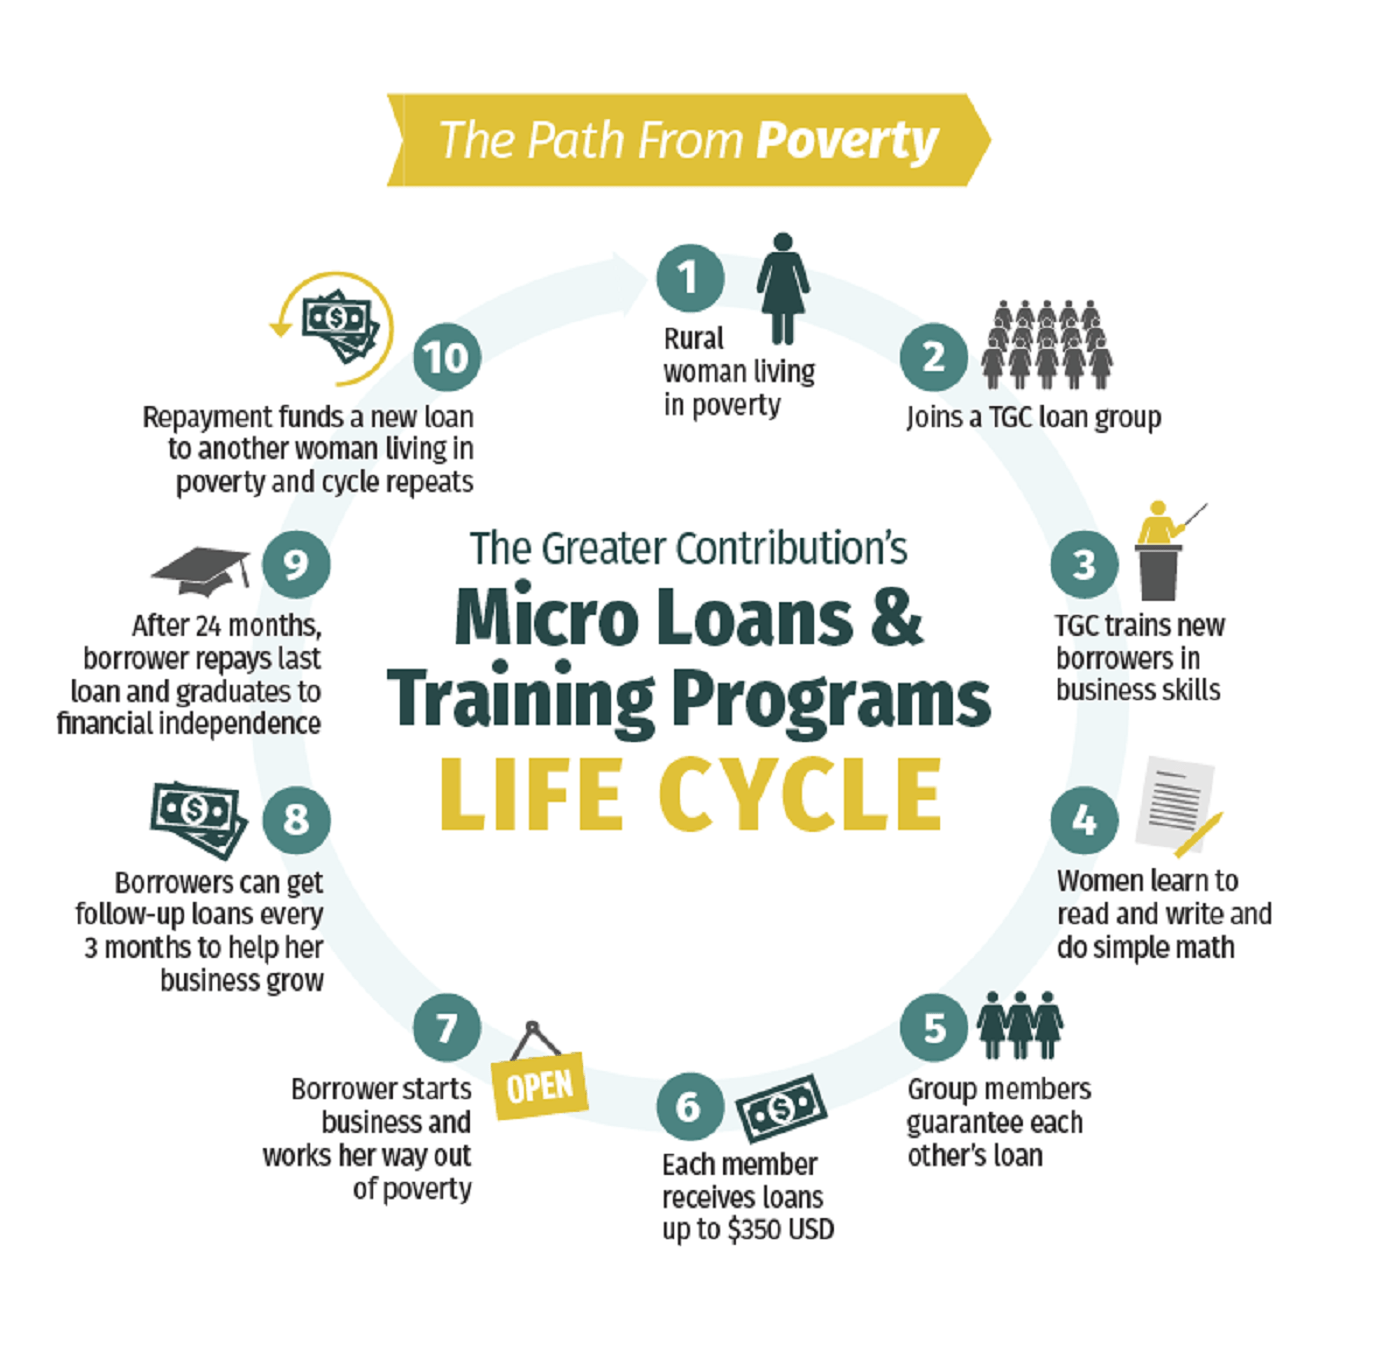 Infographic about the path from poverty.